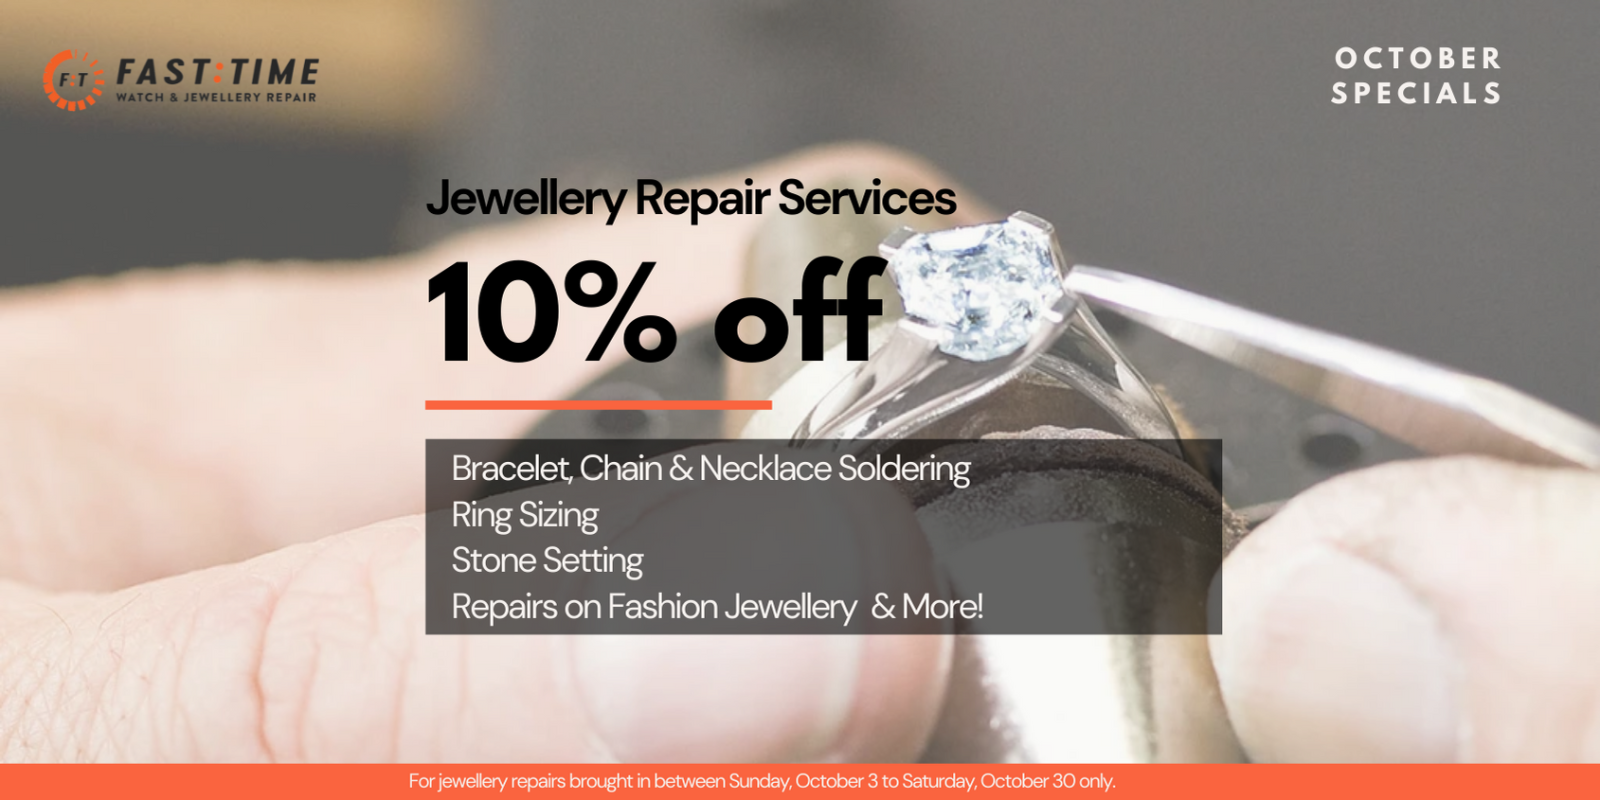 [Image] [offer] 10% OFF JEWELLERY REPAIRS